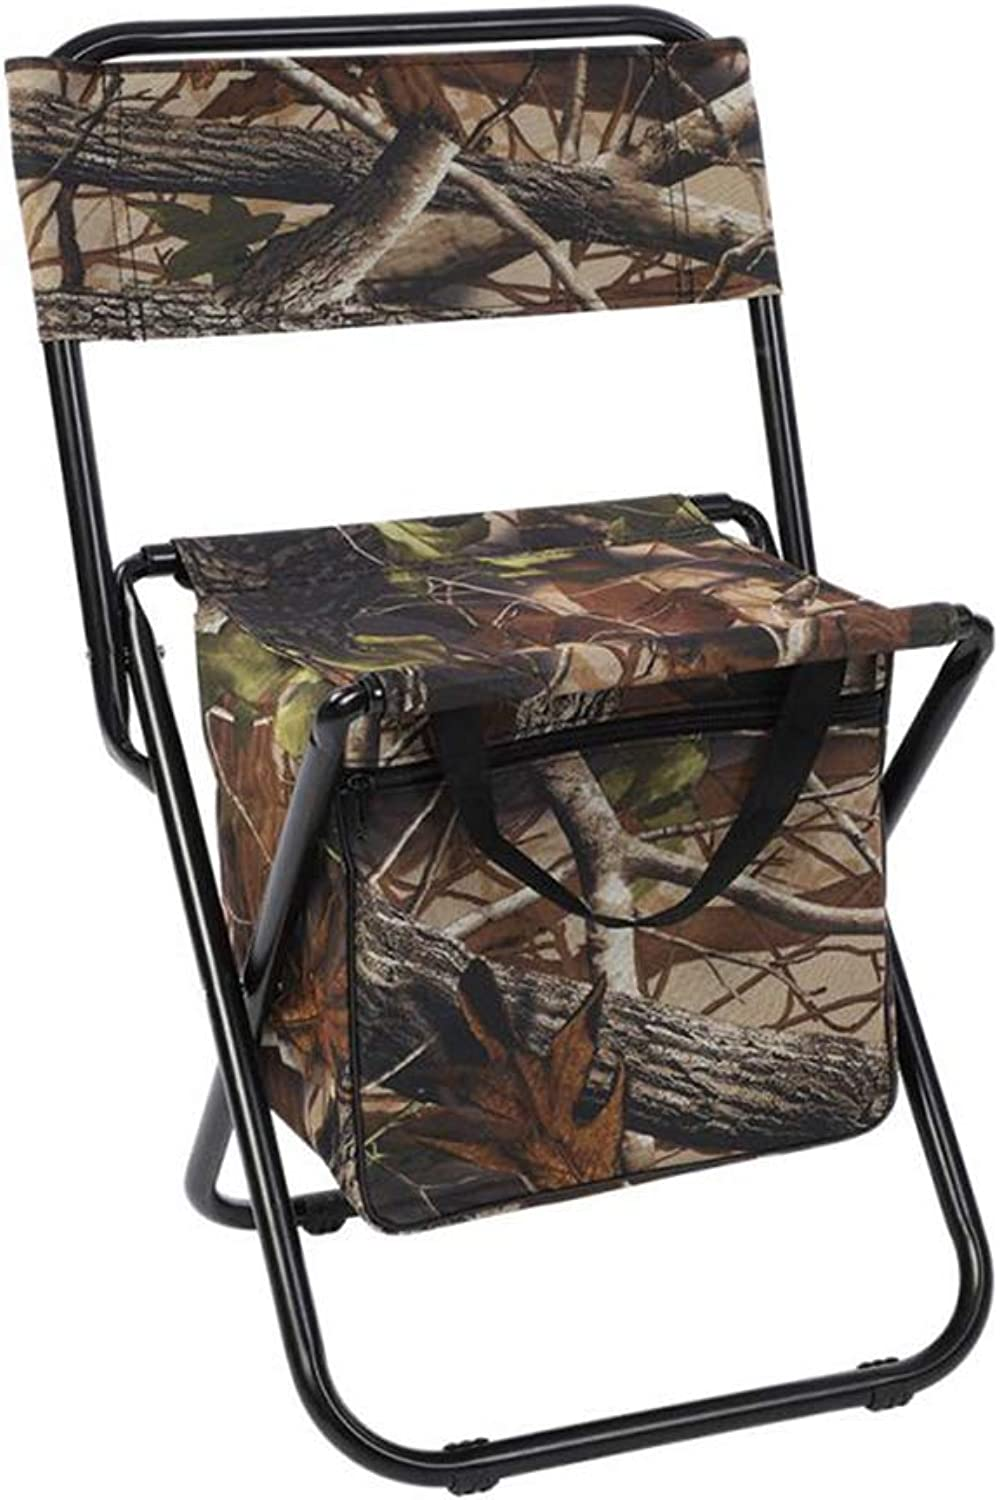 Outdoor Backrest Folding Chair, Ultra Light Folding Fishing Chair Seat Stool Camping Leisure Picnic Beach Chair with Backrest Storage Bag, Can Bearing Weight 150 kg